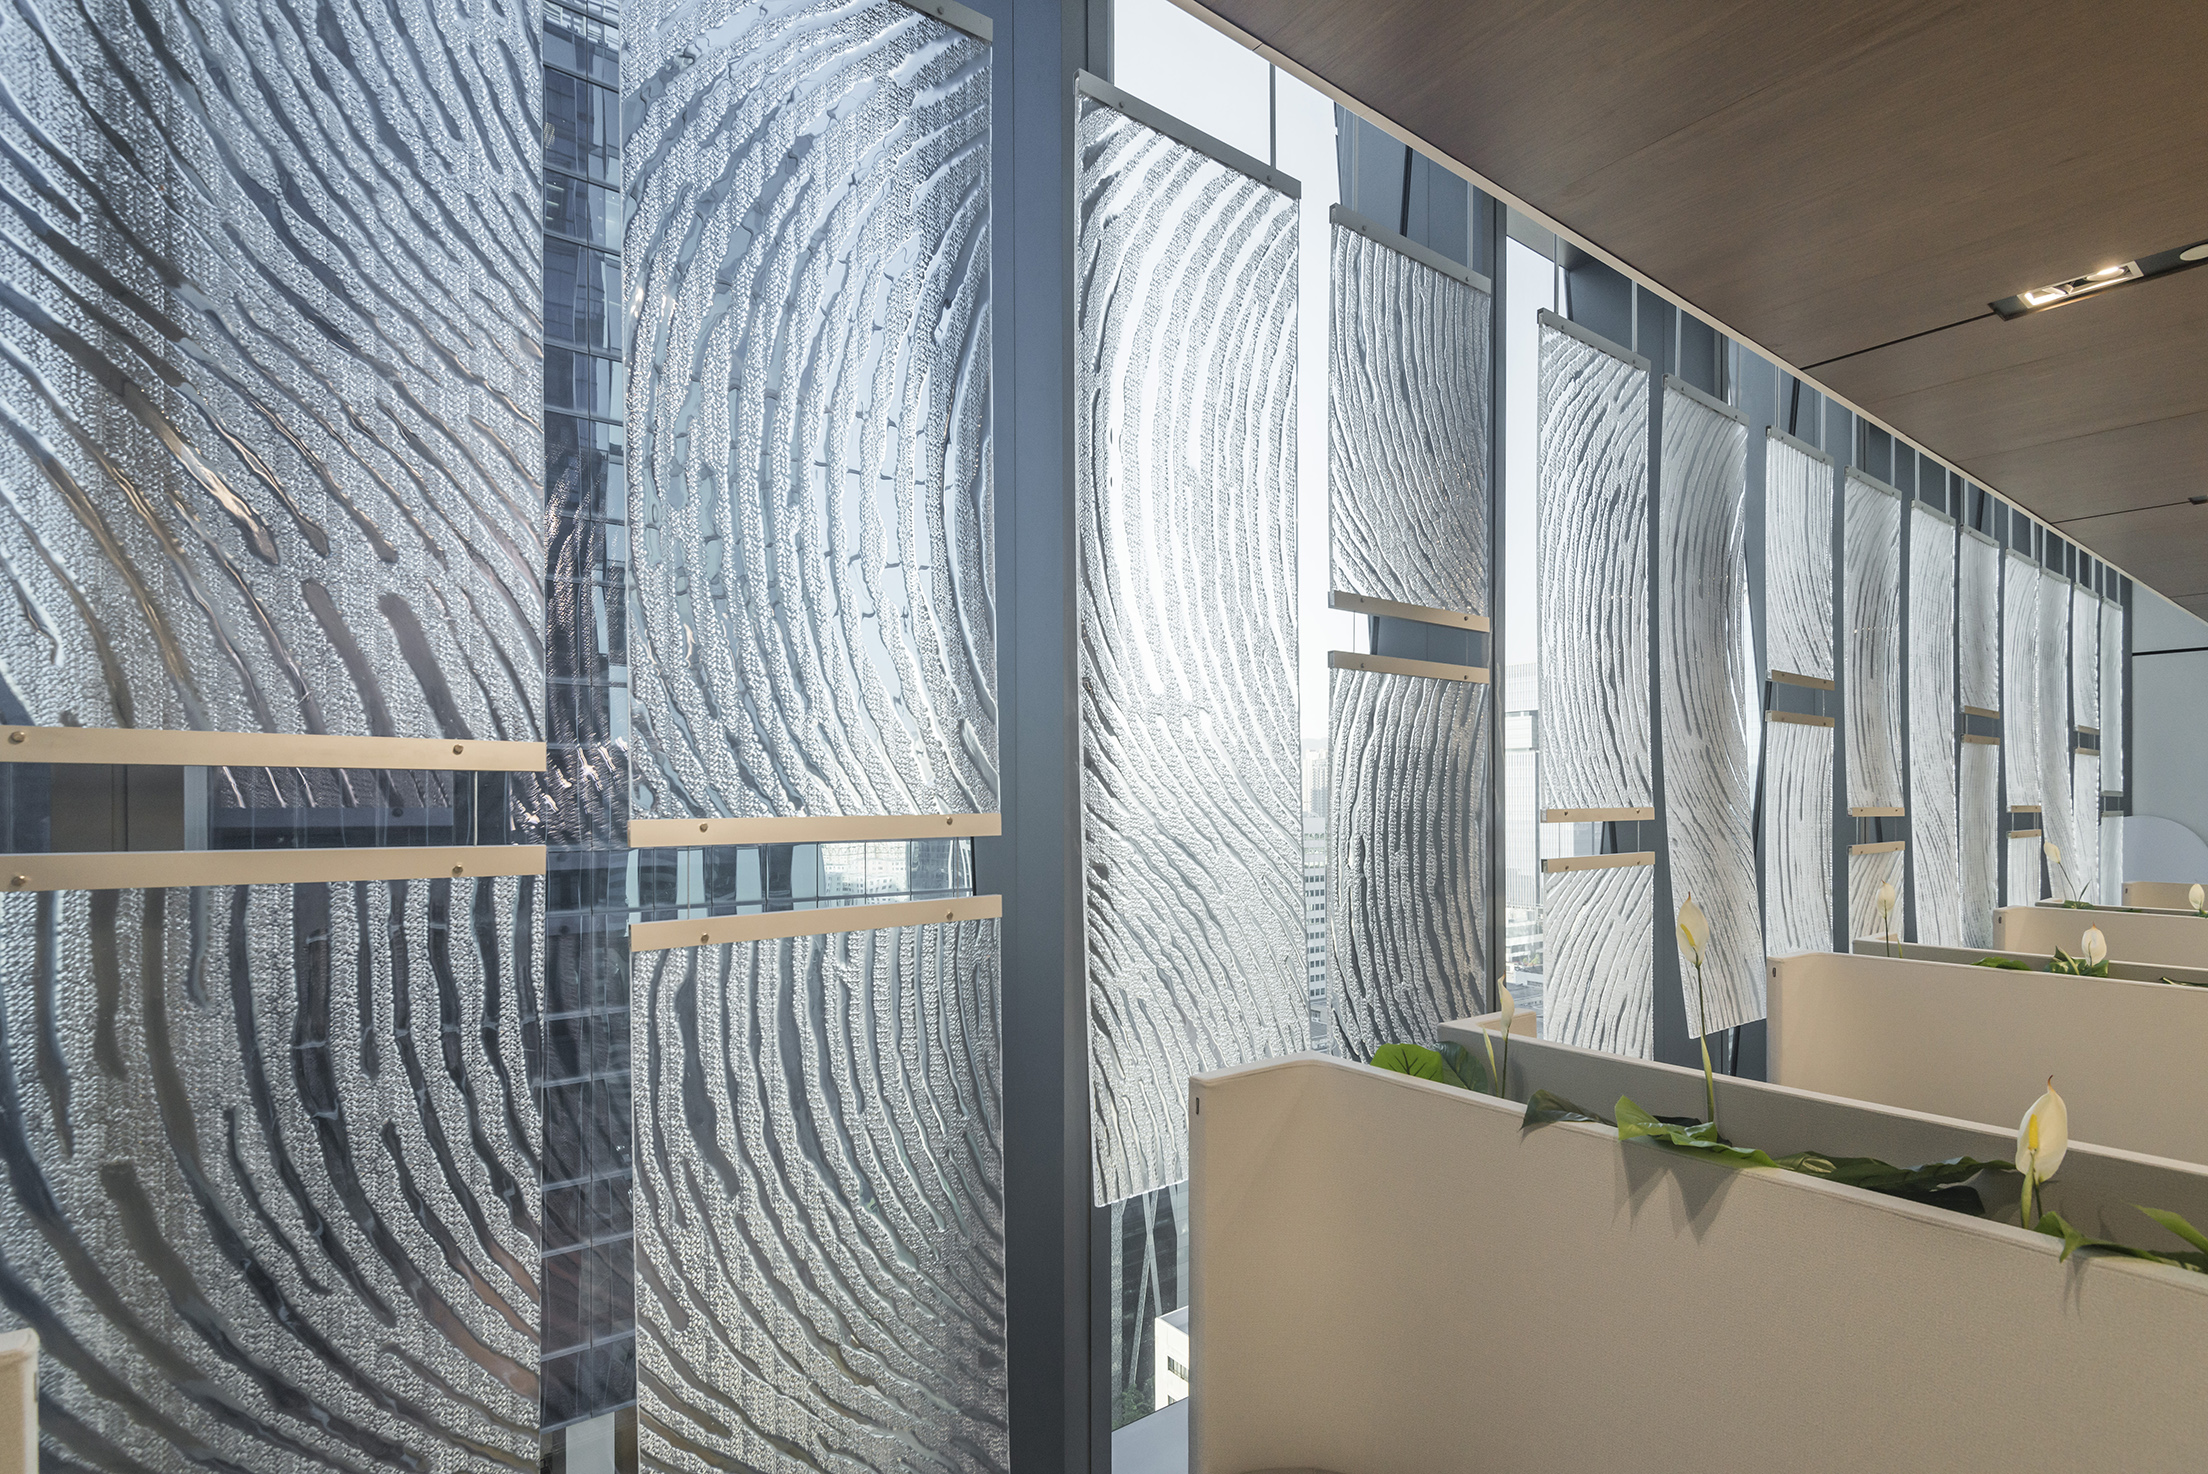 jeb-architecturalfinishes-compac-forbo-resinpanel-office-hk-05.jpg